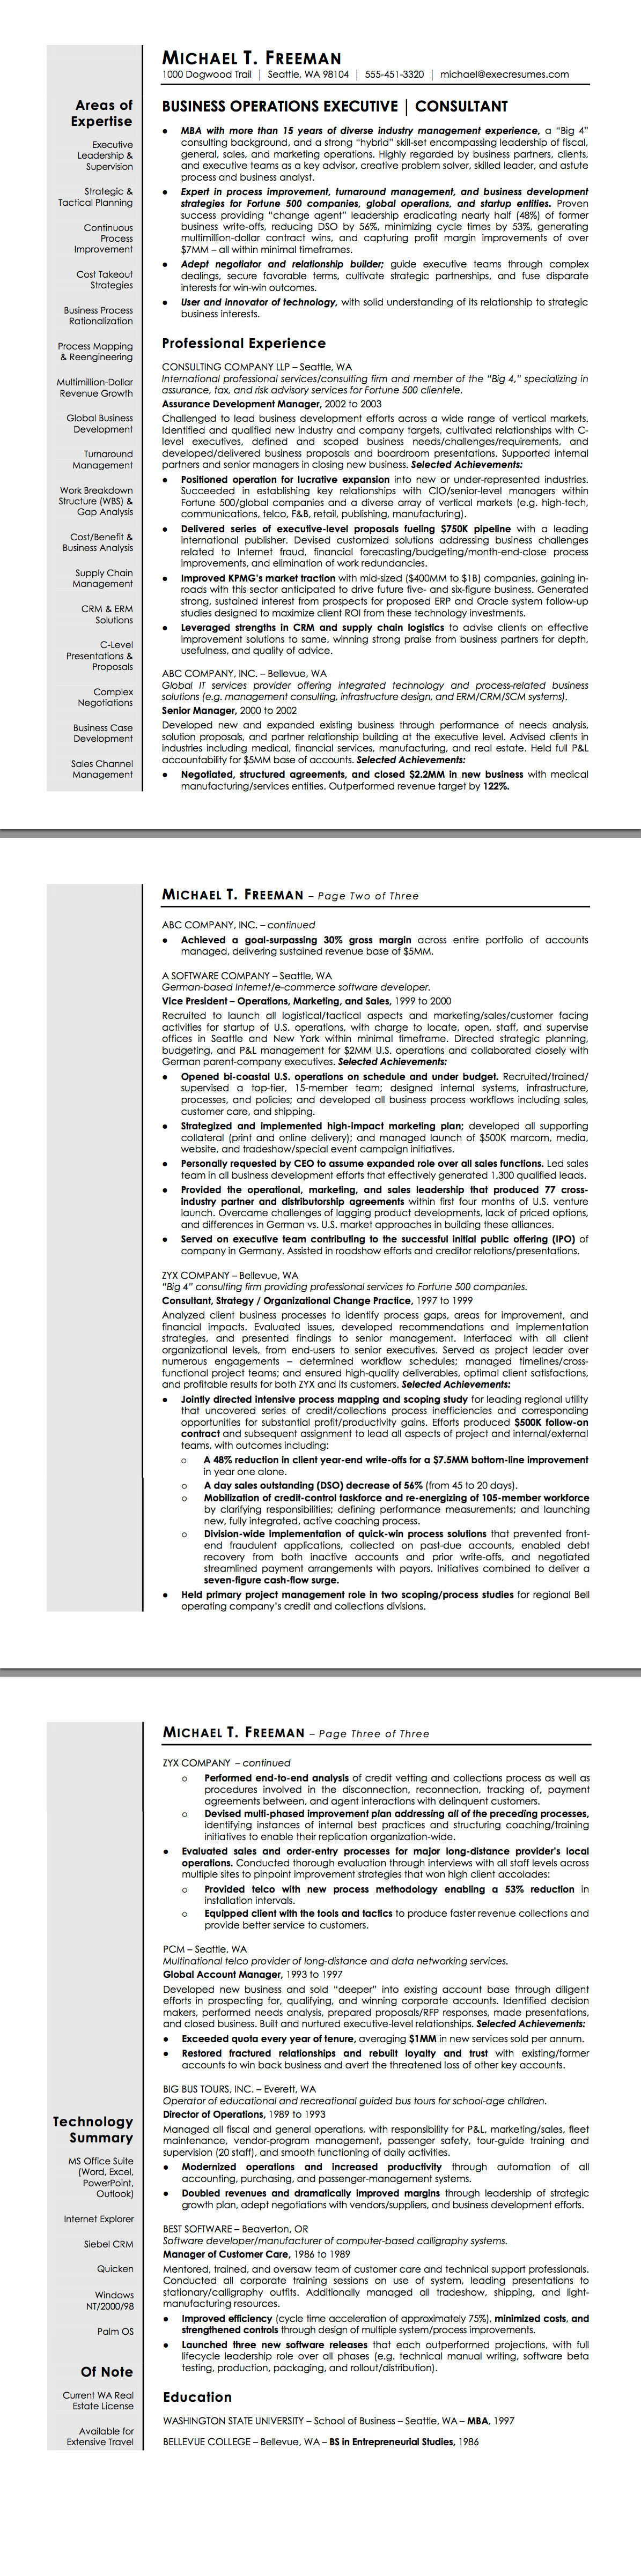 resumepower  sample resume for an executive chef